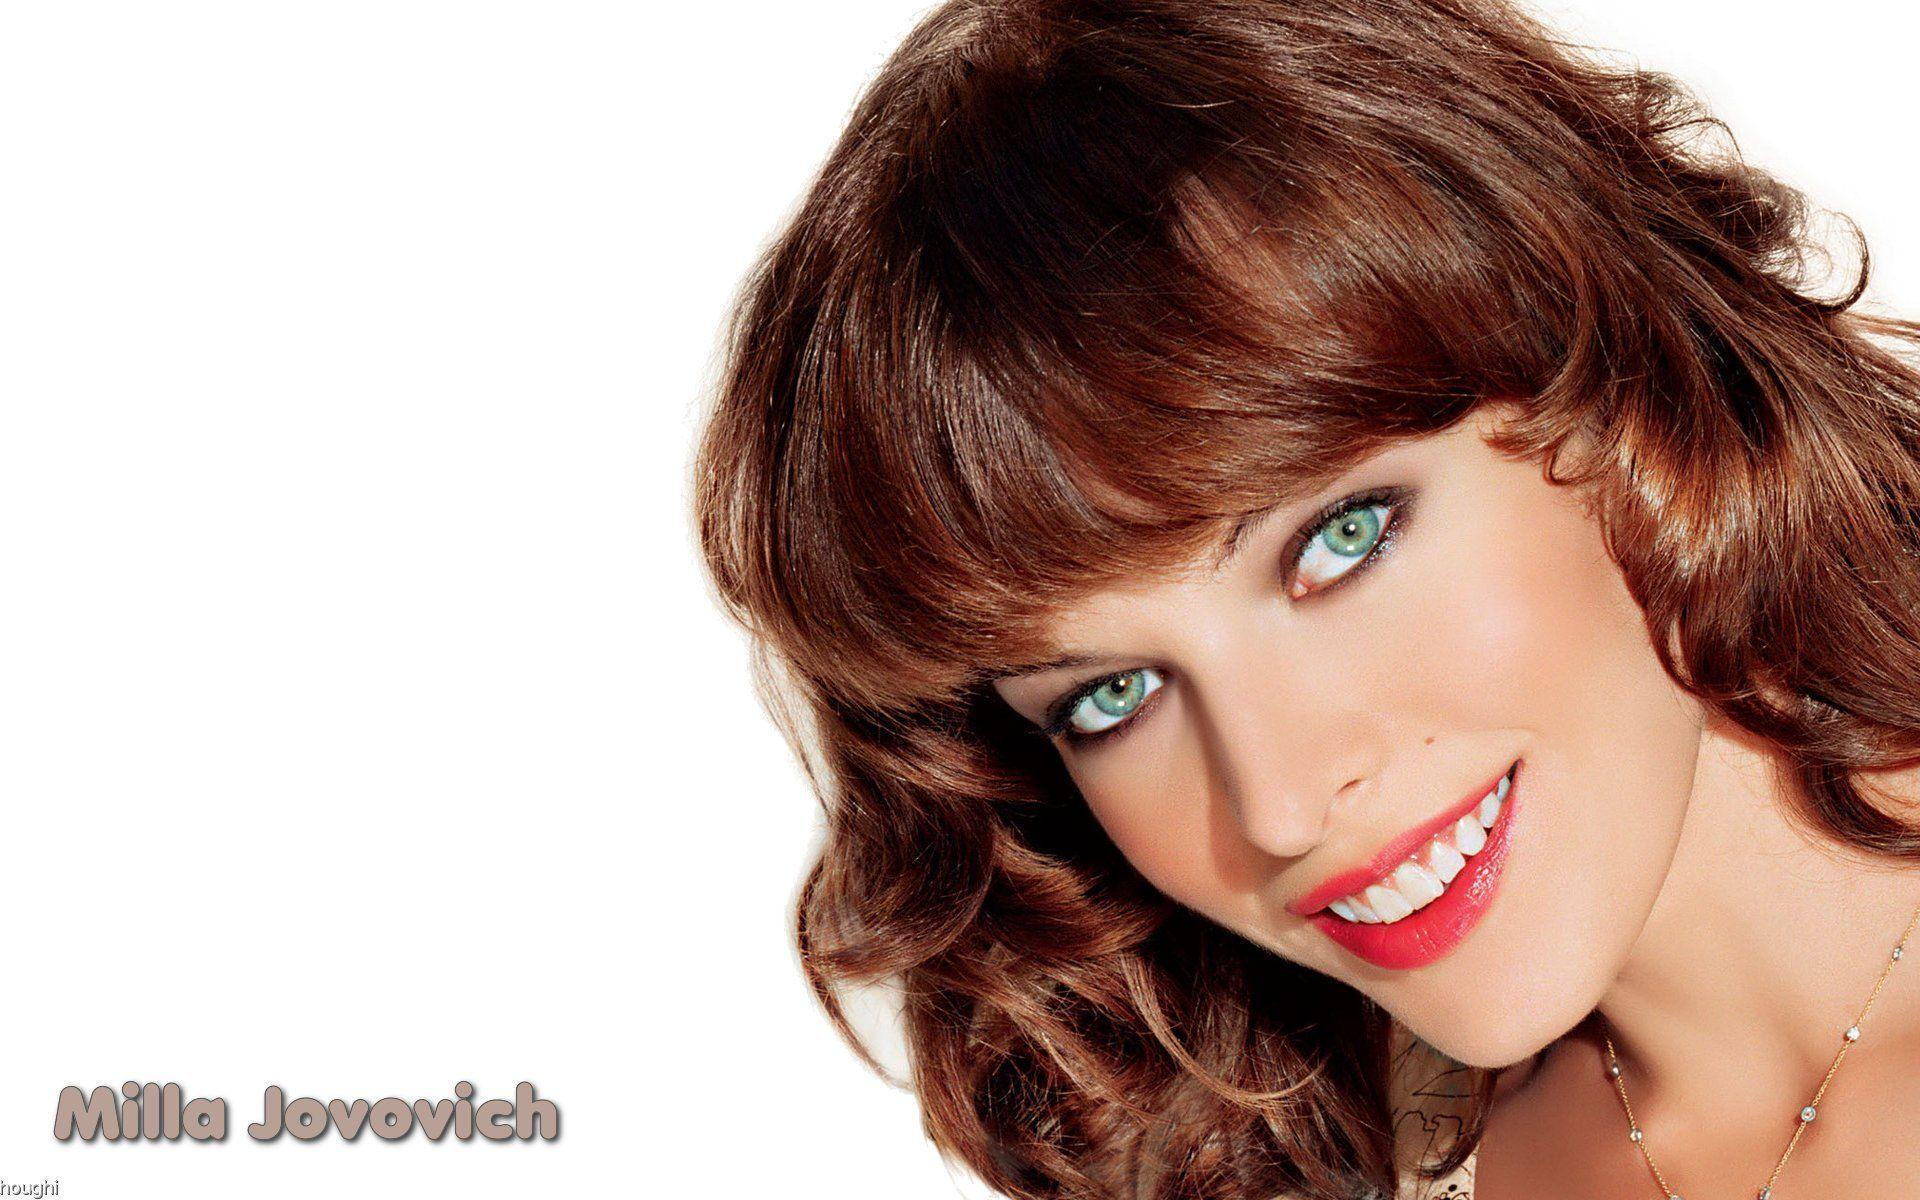 Milla Jovovich Hd Wallpapers Wallpaper Cave